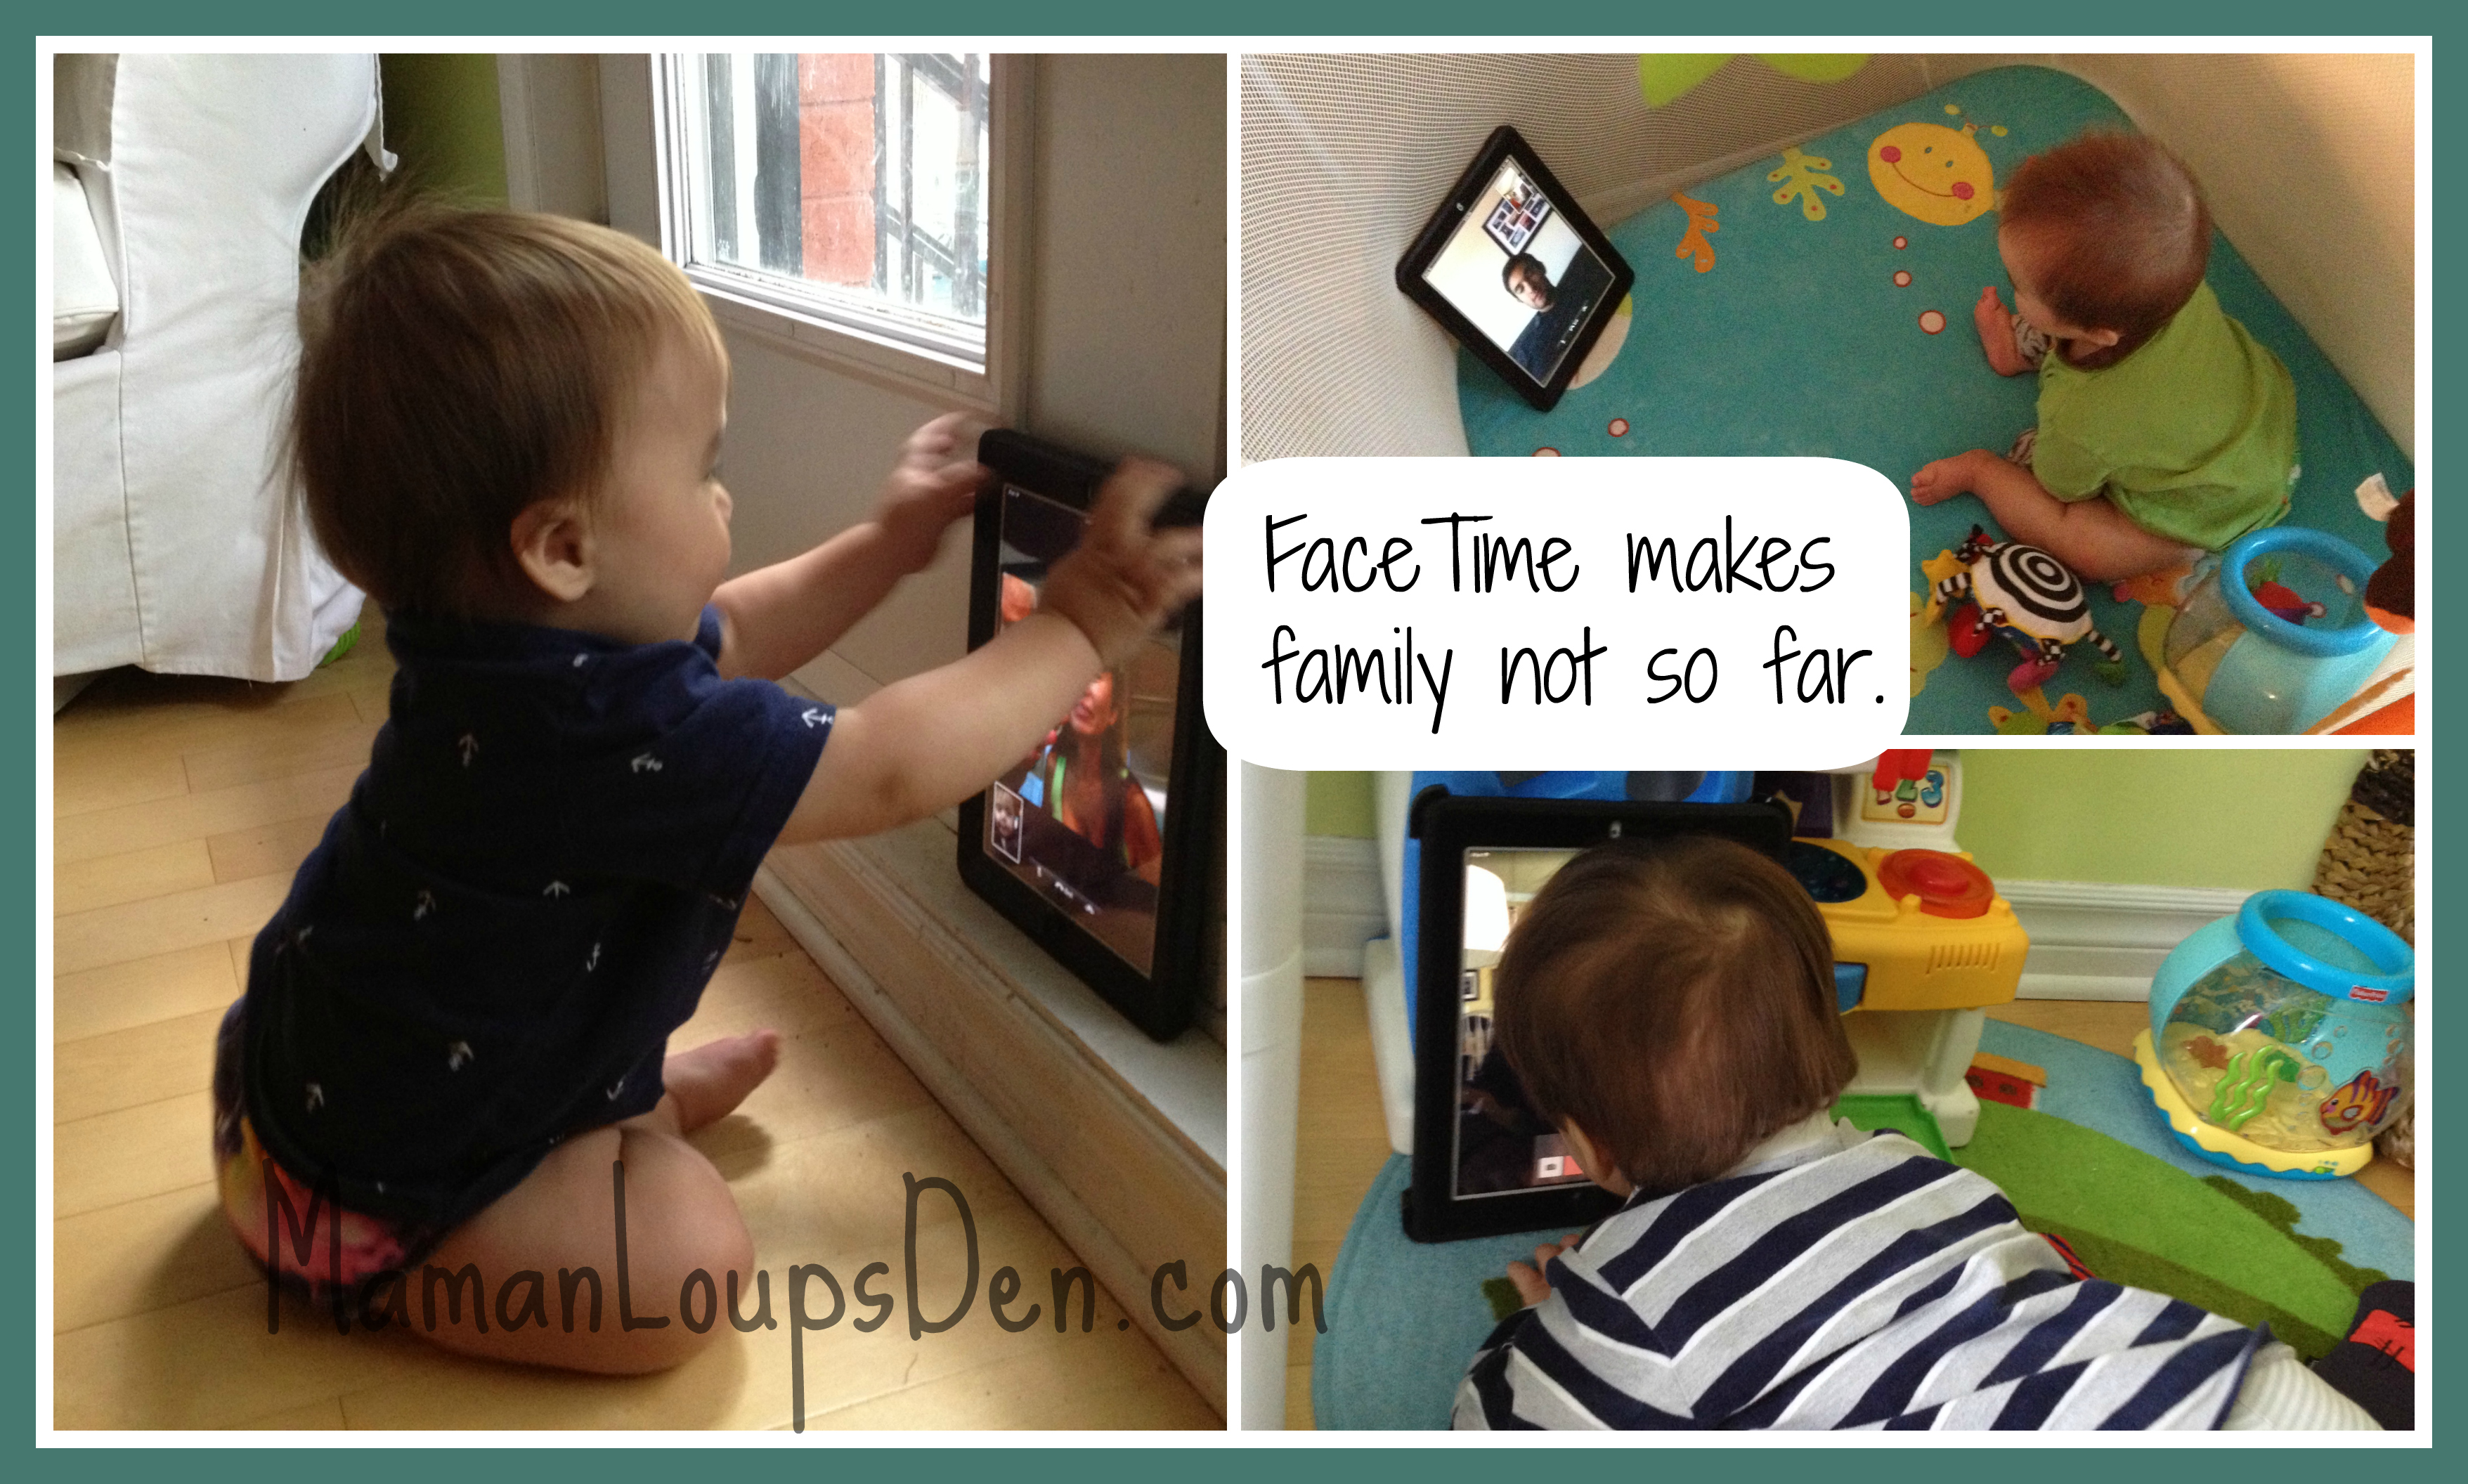 FaceTime is Family Time!